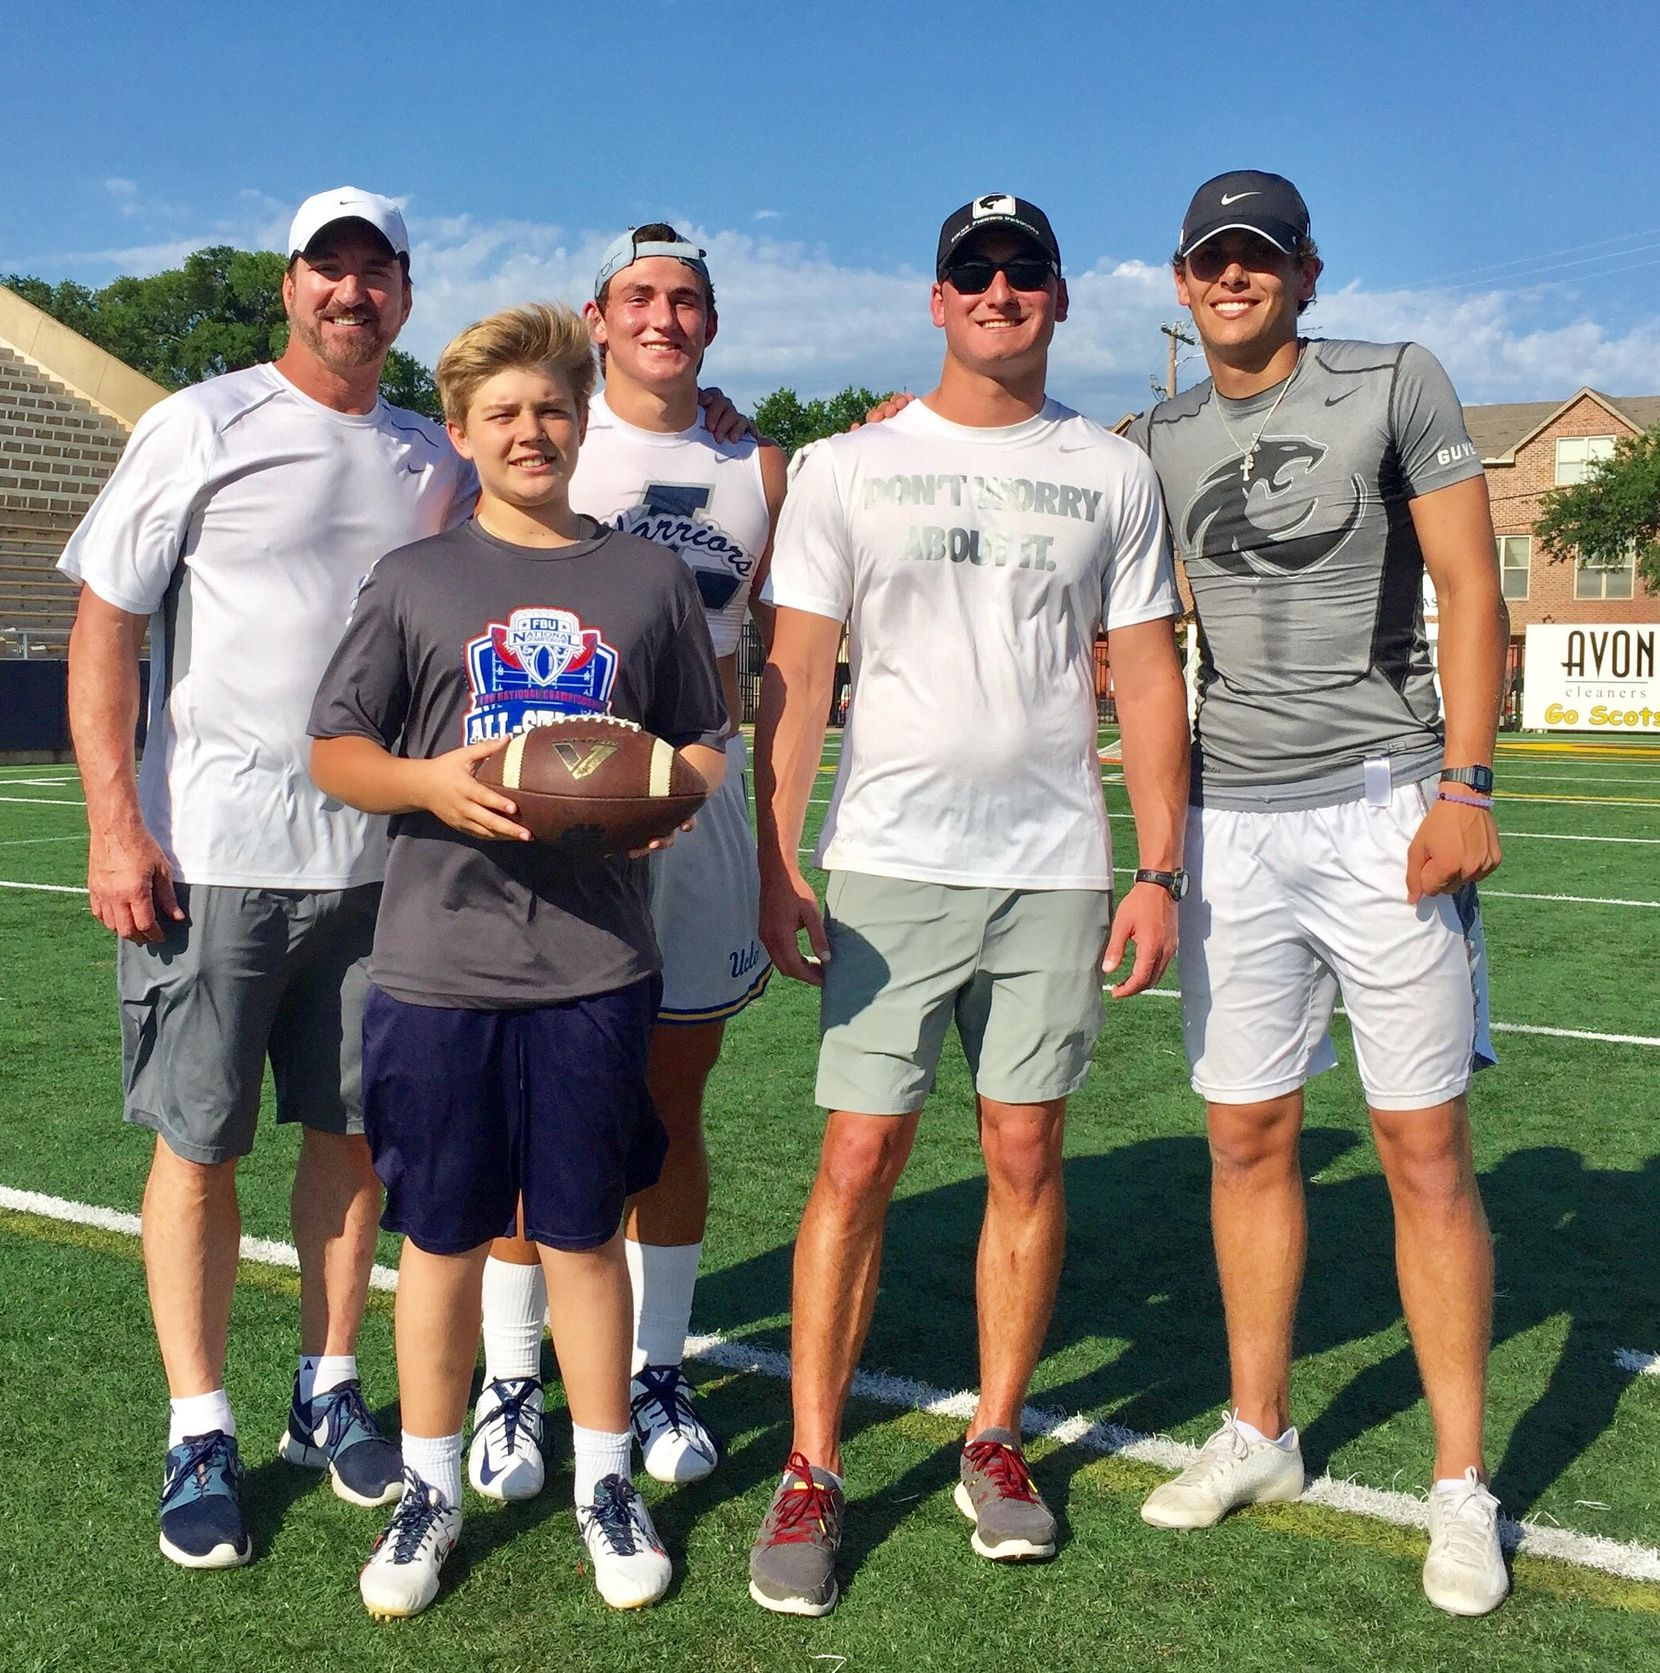 (L-R) Babe Laufenberg, Brayden Schager, Luke Laufenberg, Joe Willie Laufenberg and Nick Starkel. Schager, expected to be the starting quarterback at Highland Park, has worked with the Laufenbergs since he was nine years old.